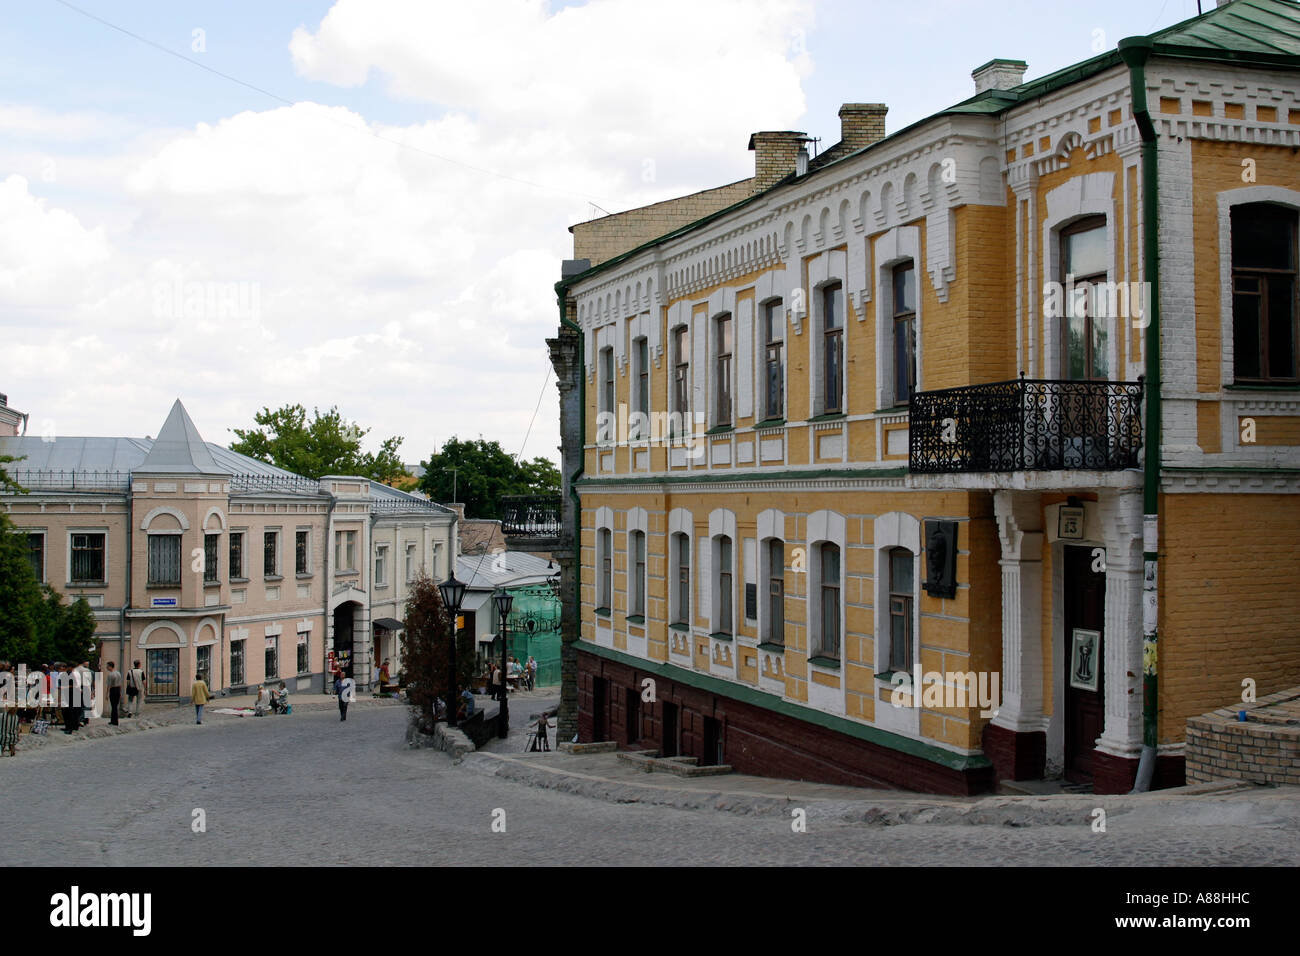 Museum of the famous russian novelist and playwright Mikhail Bulgakov at Andriyivsky Uzviz (Andrew's Desent) in Kiev, Ukraine. - Stock Image